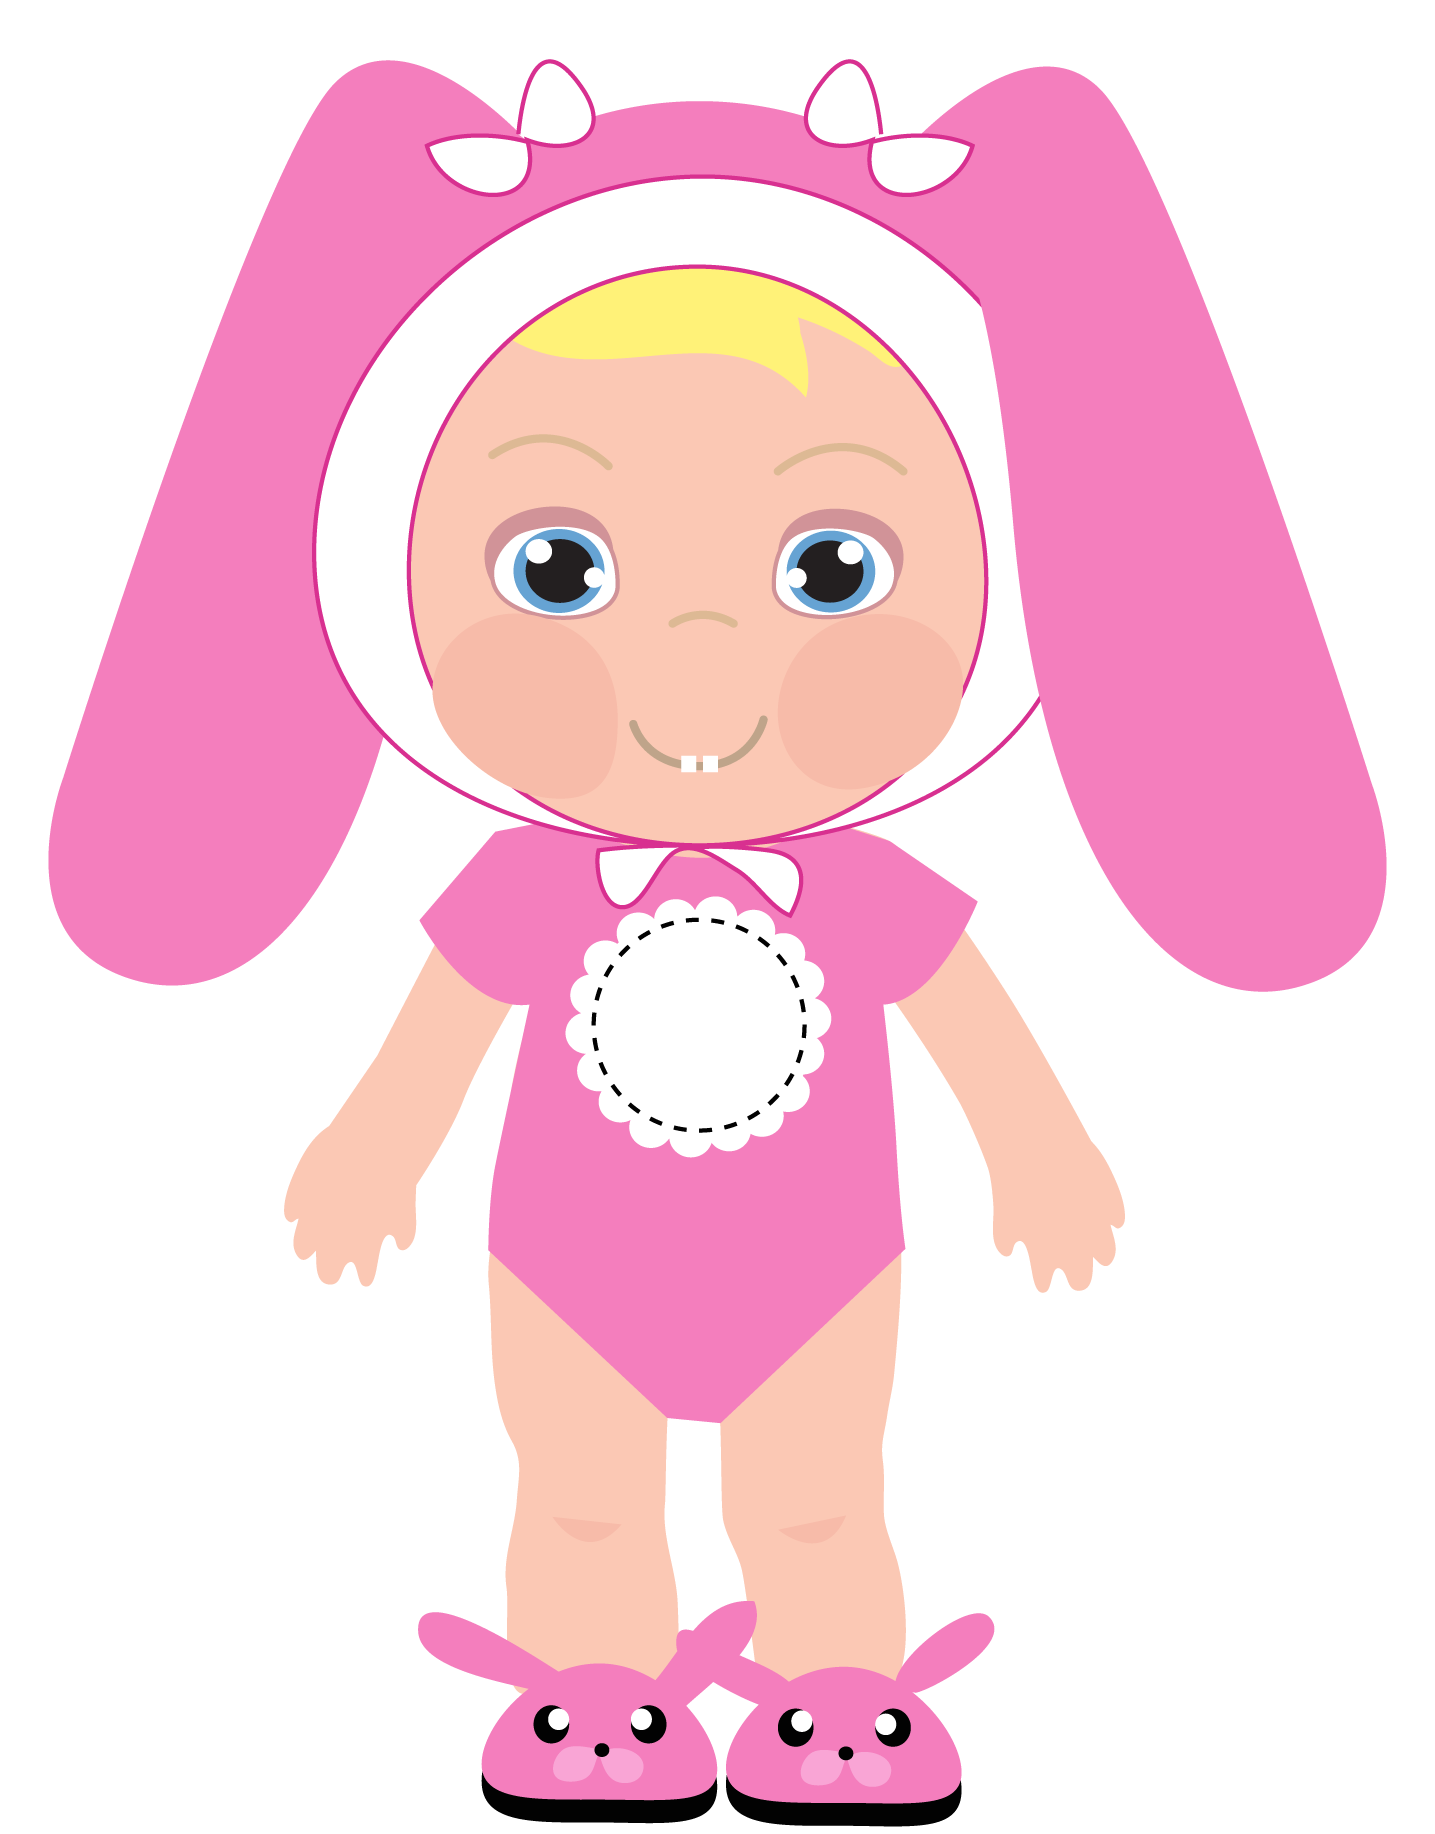 Clipart 1 year old image royalty free download 28+ Collection of 1 Year Old Clipart | High quality, free cliparts ... image royalty free download